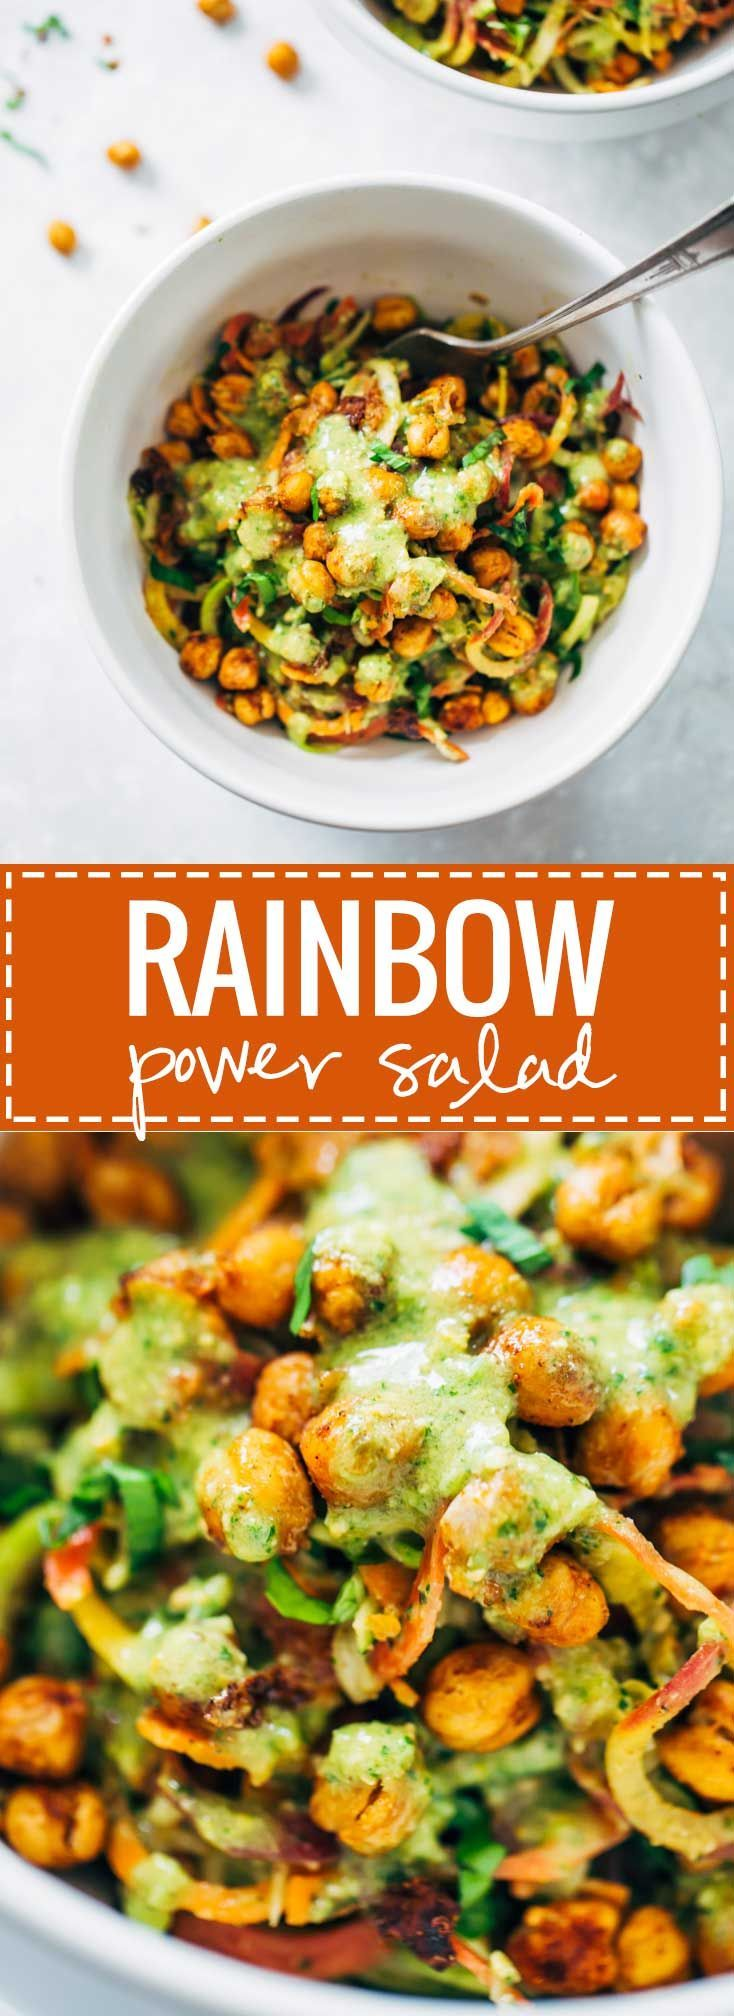 Rainbow Power Salad with Roasted Chickpeas - a healthy, easy, colorful salad that will bring out your glow!  #vegan.